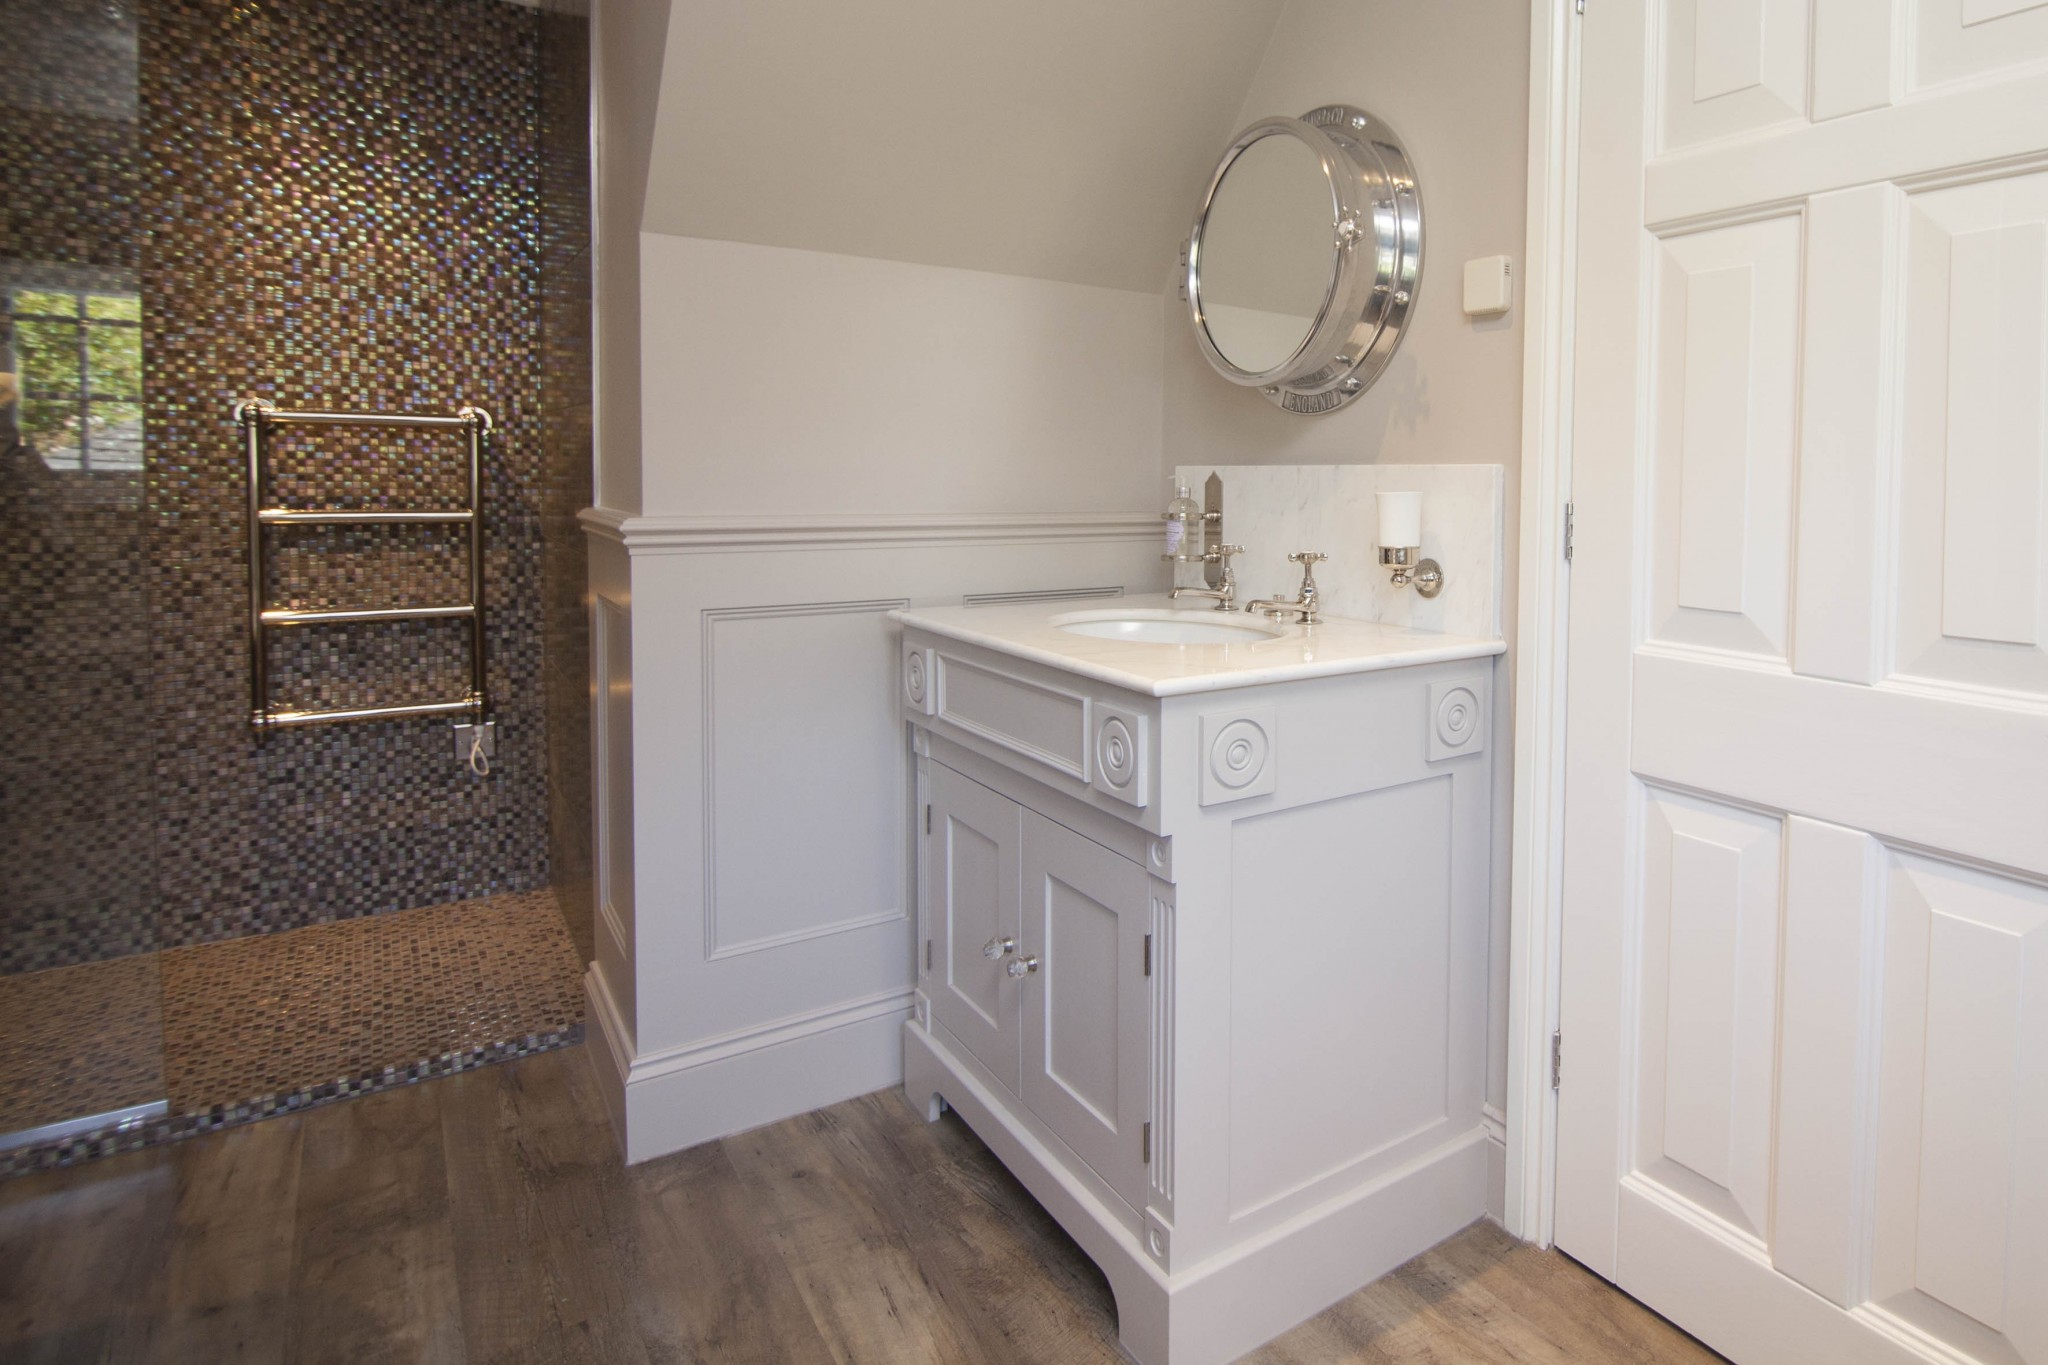 Sink Vanity Unit Best With Sink Vanity Unit Finest Bathroom Bathroom Sink Vanity Units Within